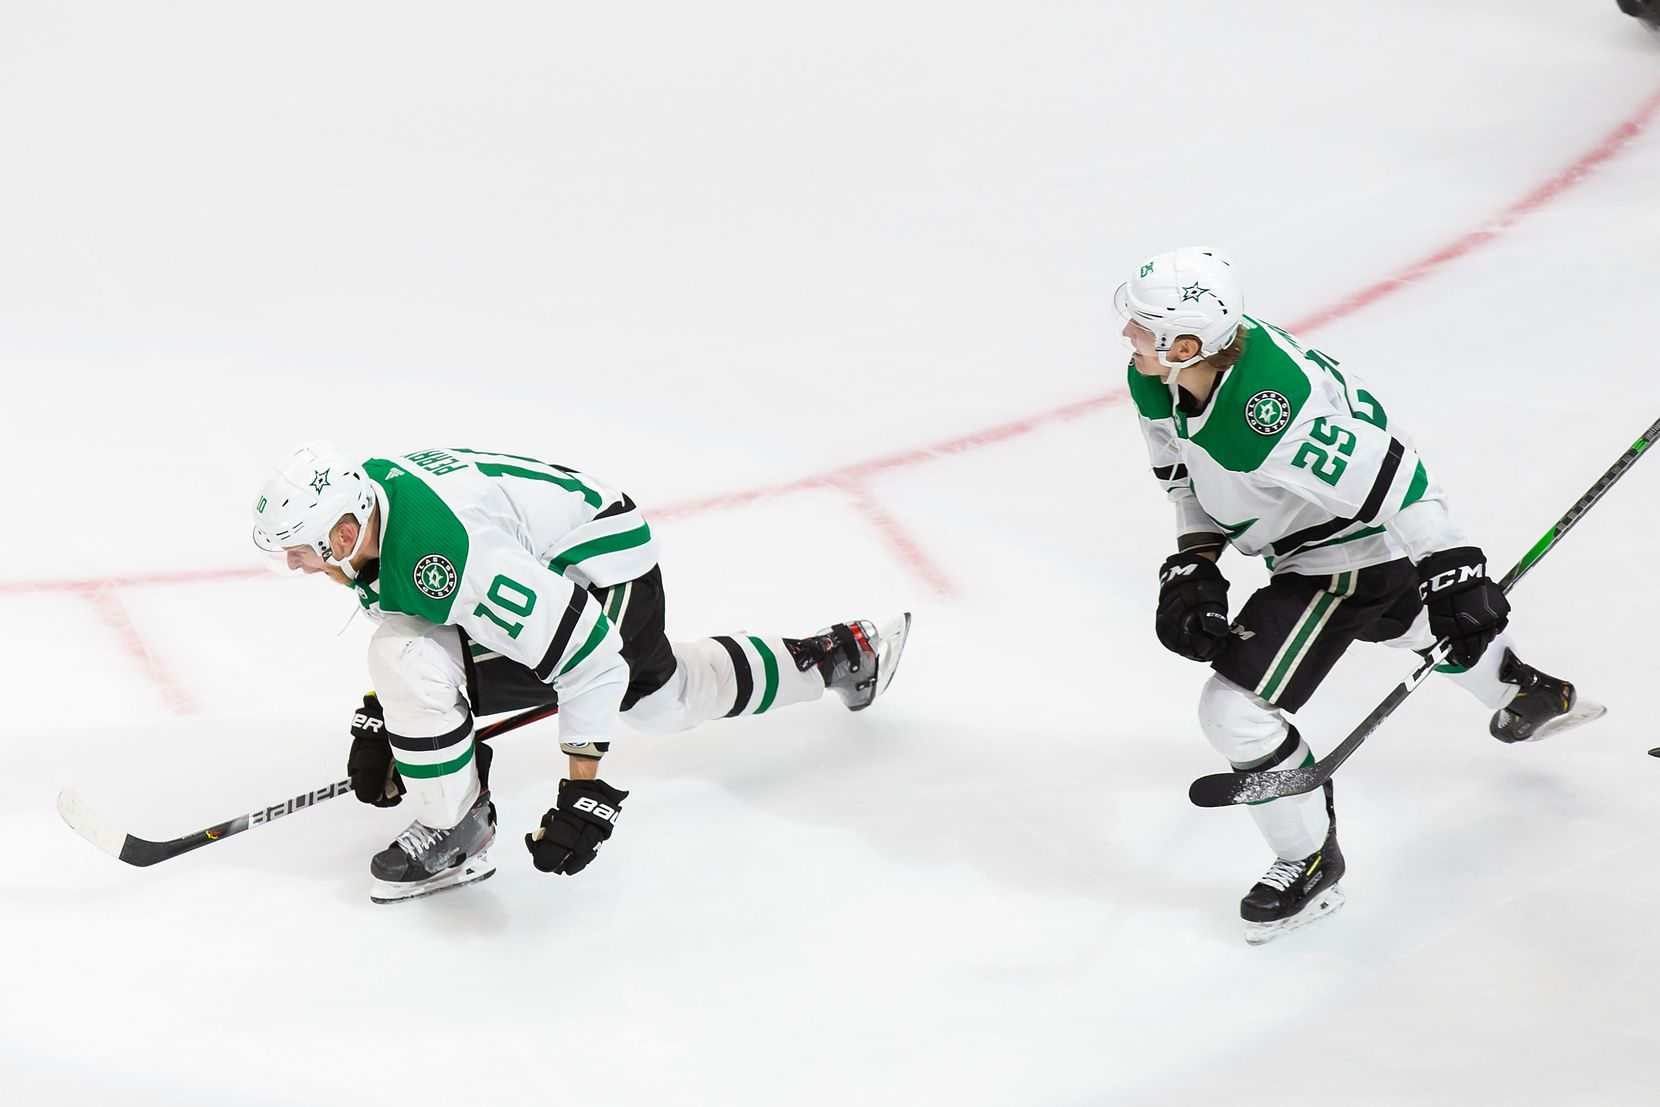 Corey Perry (10) and Joel Kiviranta (25) of the Stars celebrate Perry's game-winning goal against the Lightning during Game 5 of the Stanley Cup Final at Rogers Place in Edmonton, Alberta, on Saturday, Sept. 26, 2020.